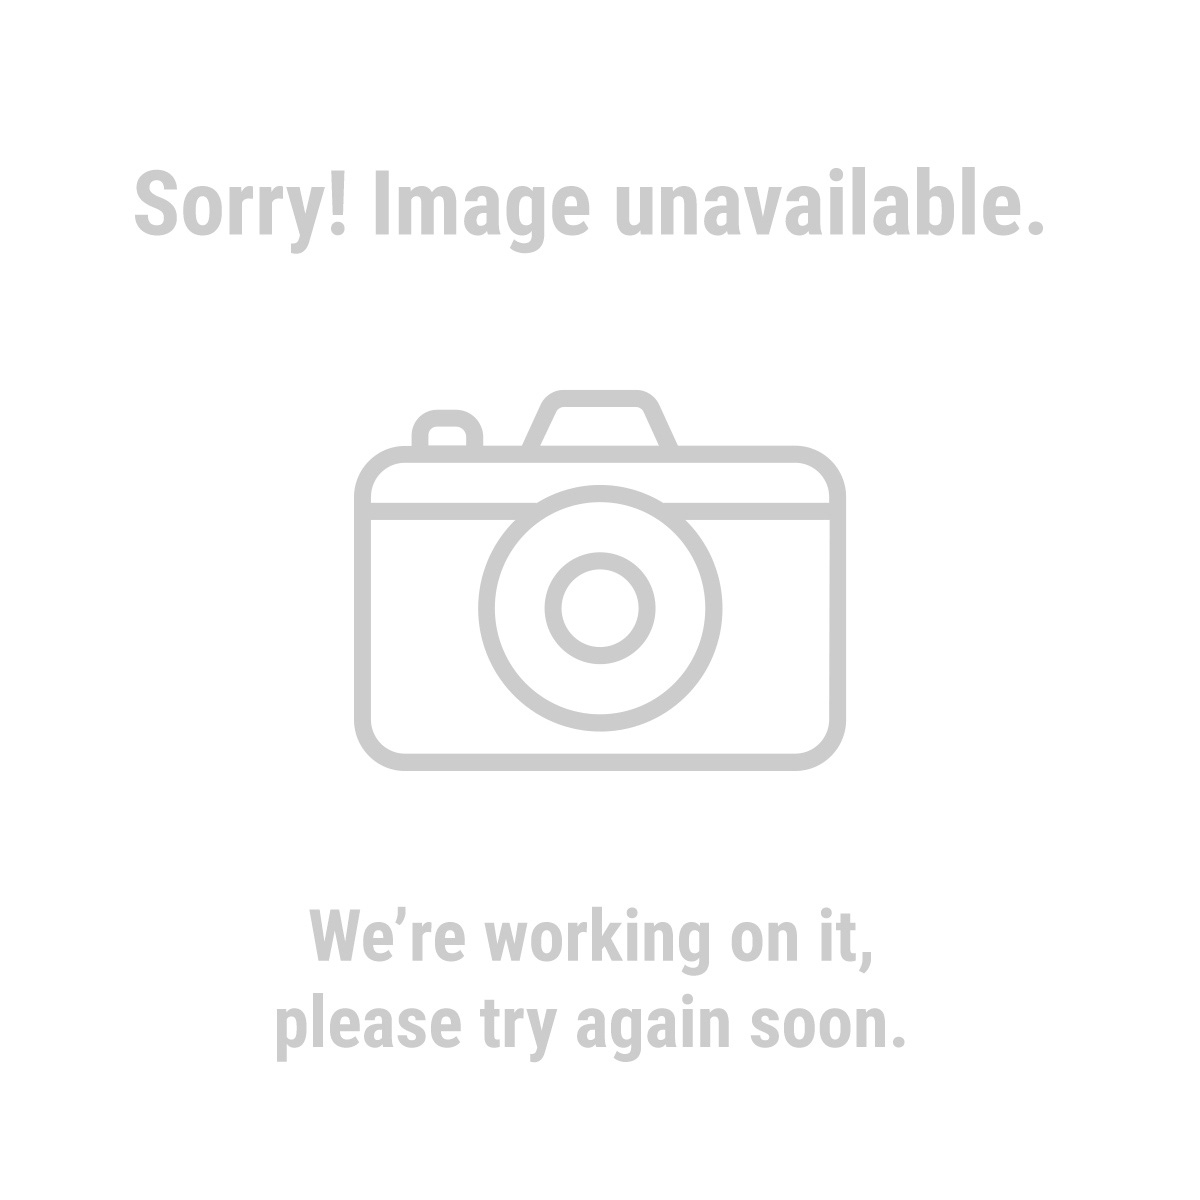 Greenwood 61280 1-1/4 gal. Home and Garden Sprayer